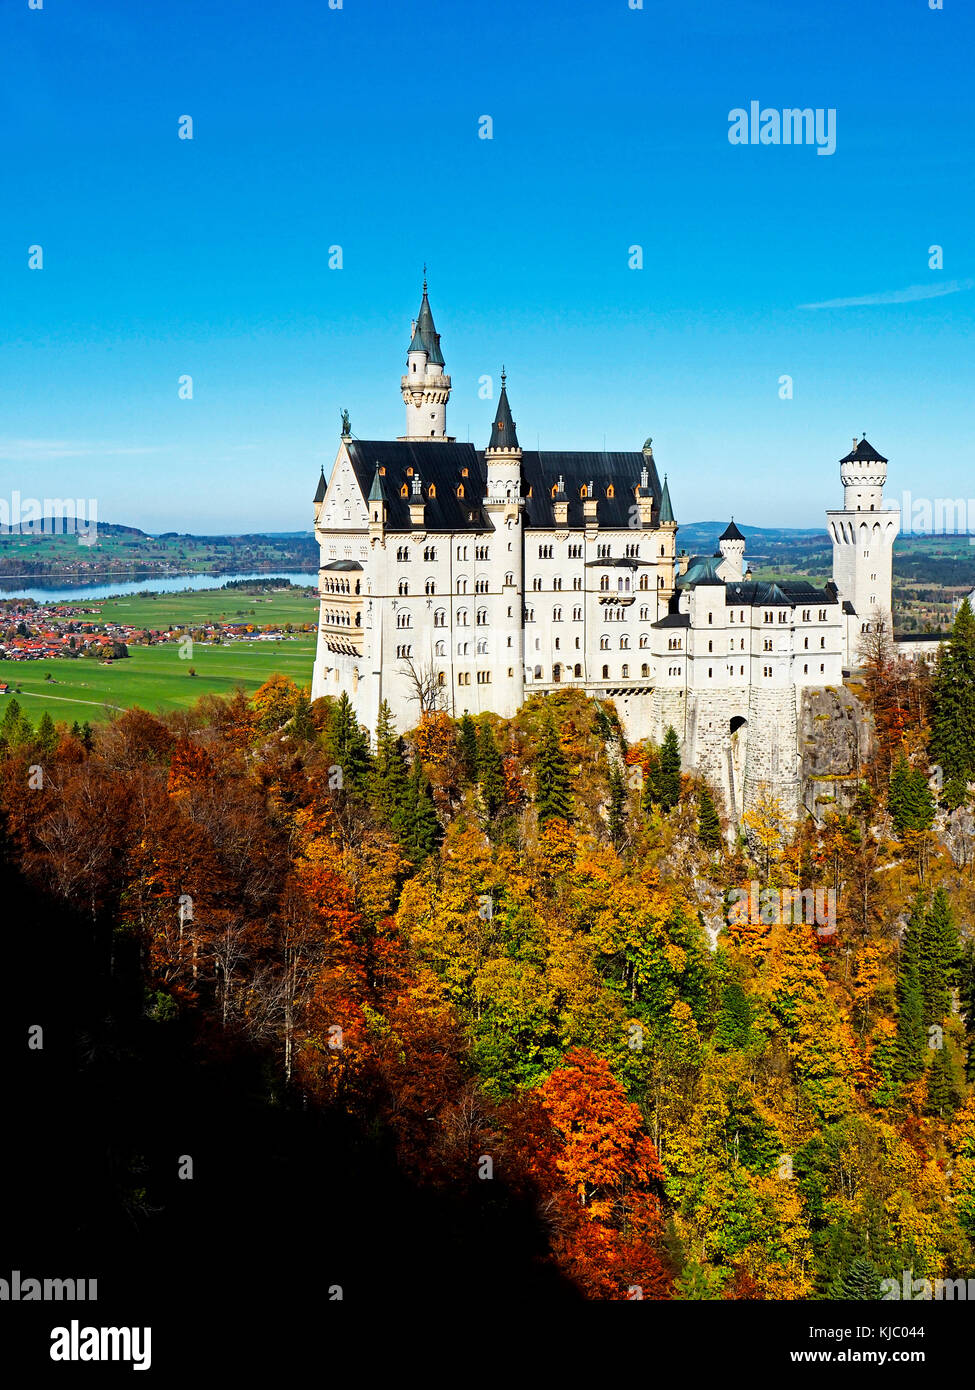 Pazza re Ludwig castello Neuschwanstein in Baviera, Germania. Immagini Stock